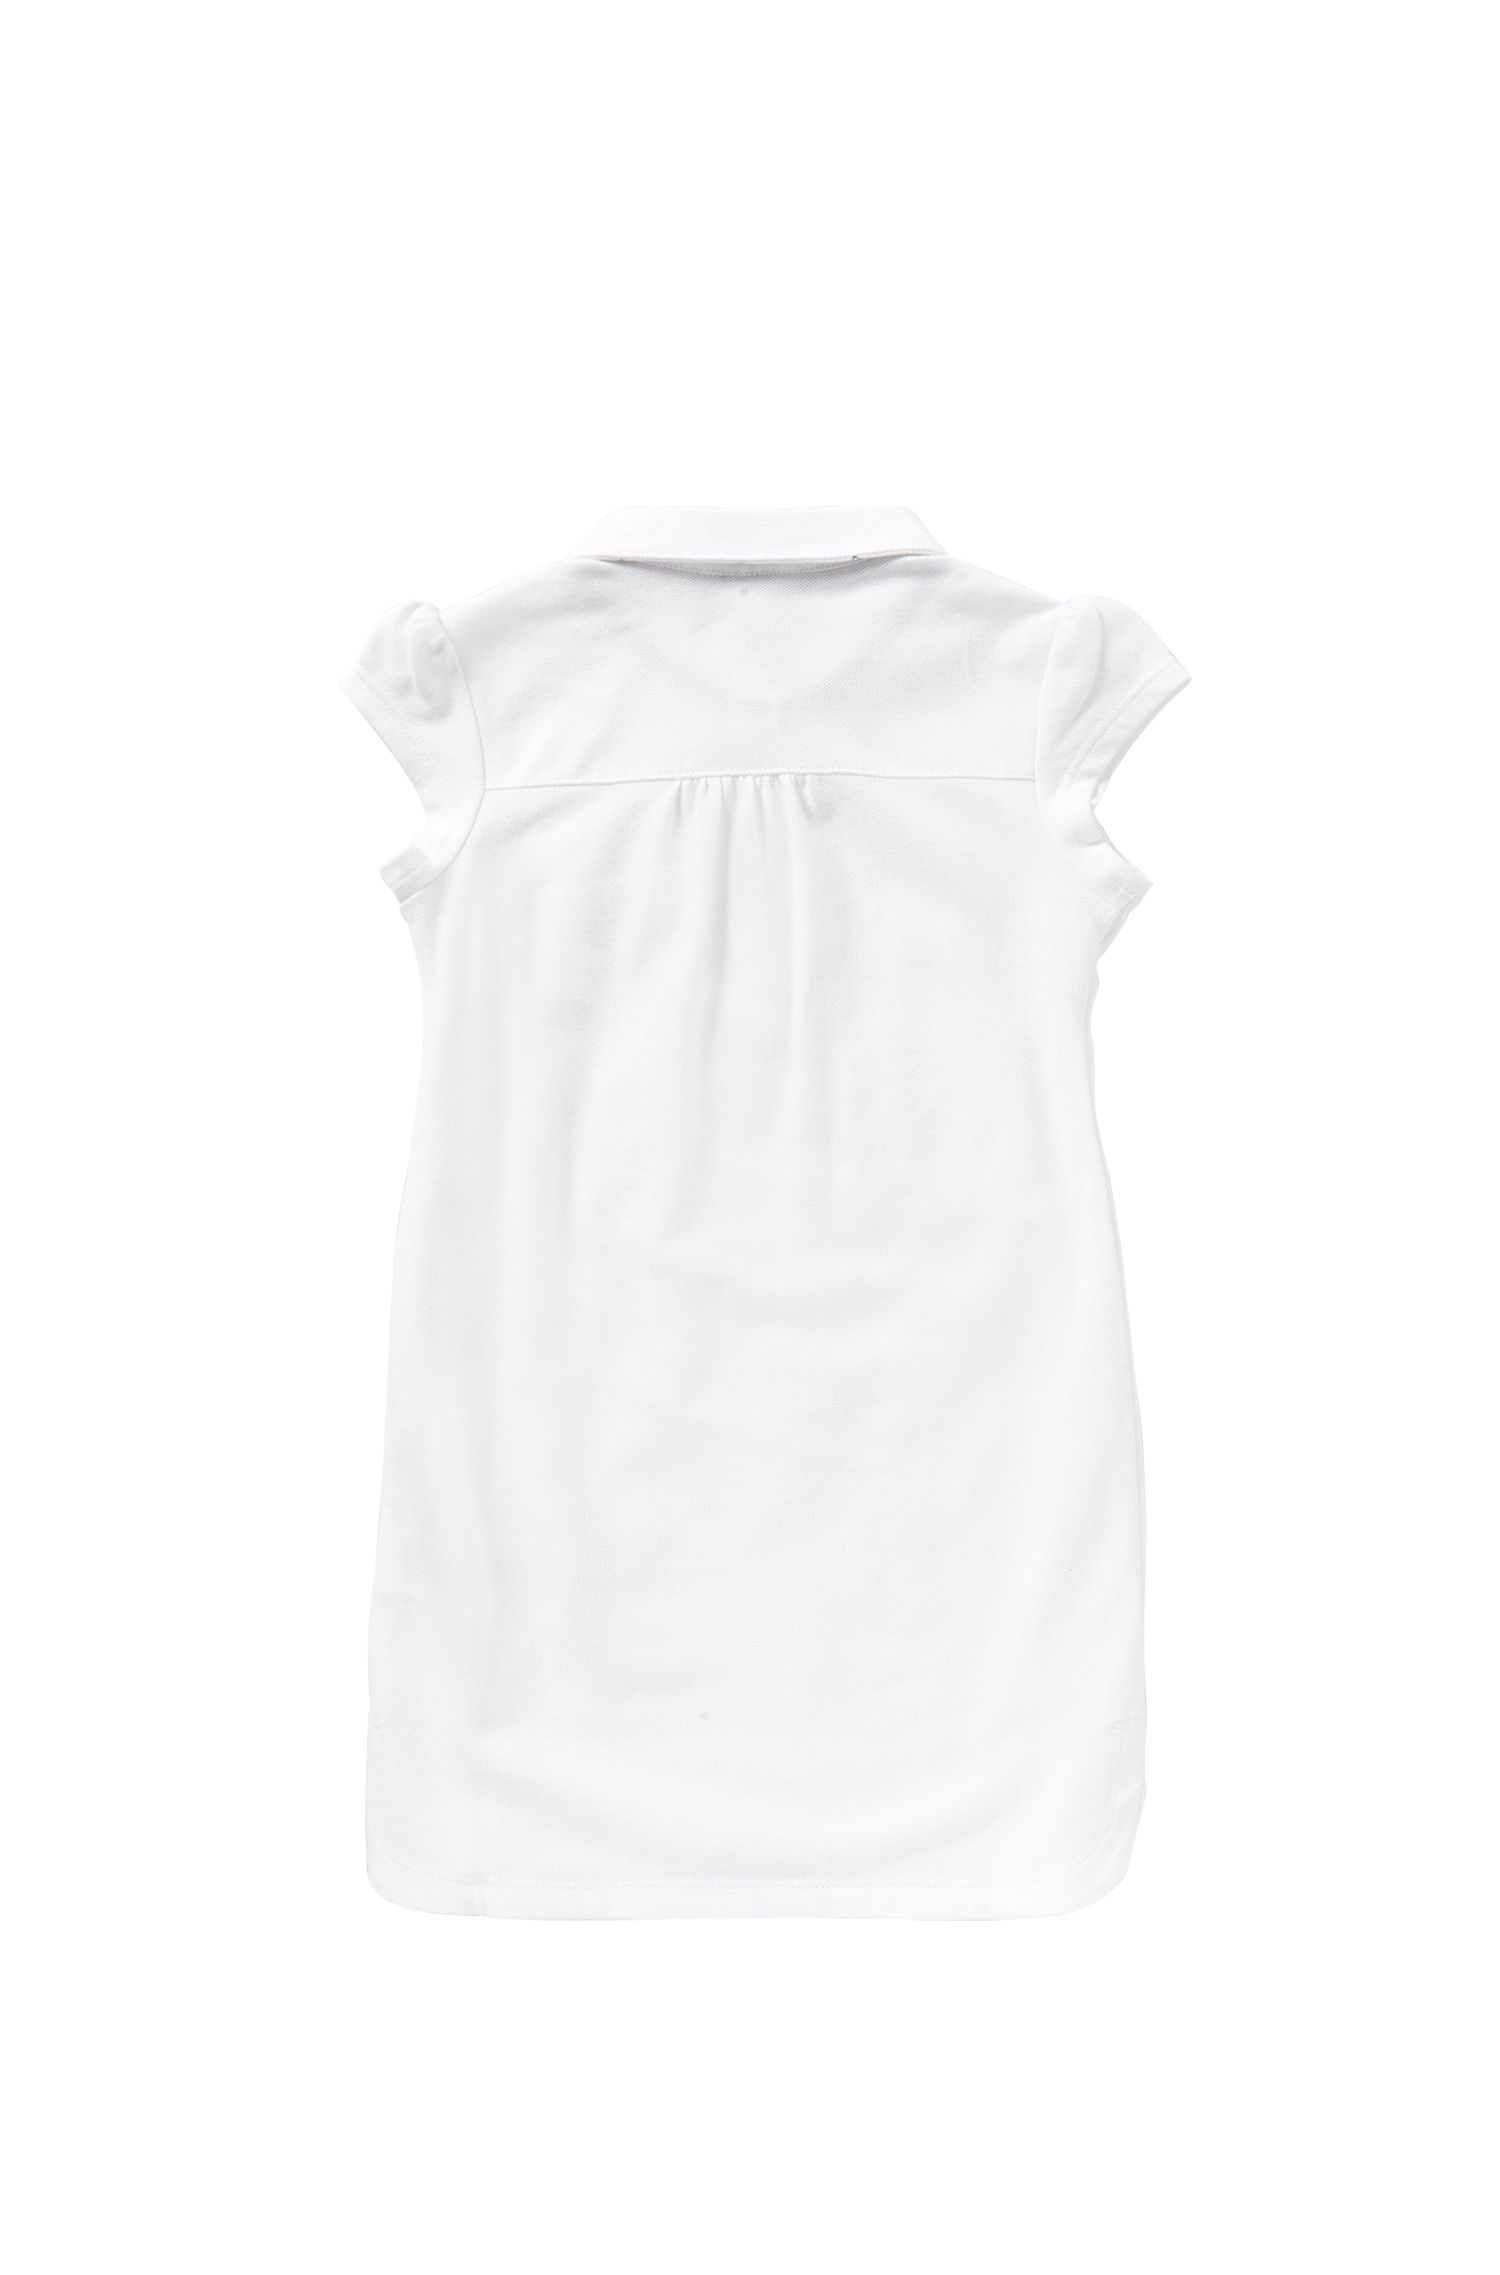 Kids' dress in stretch cotton in polo style: 'J12143'